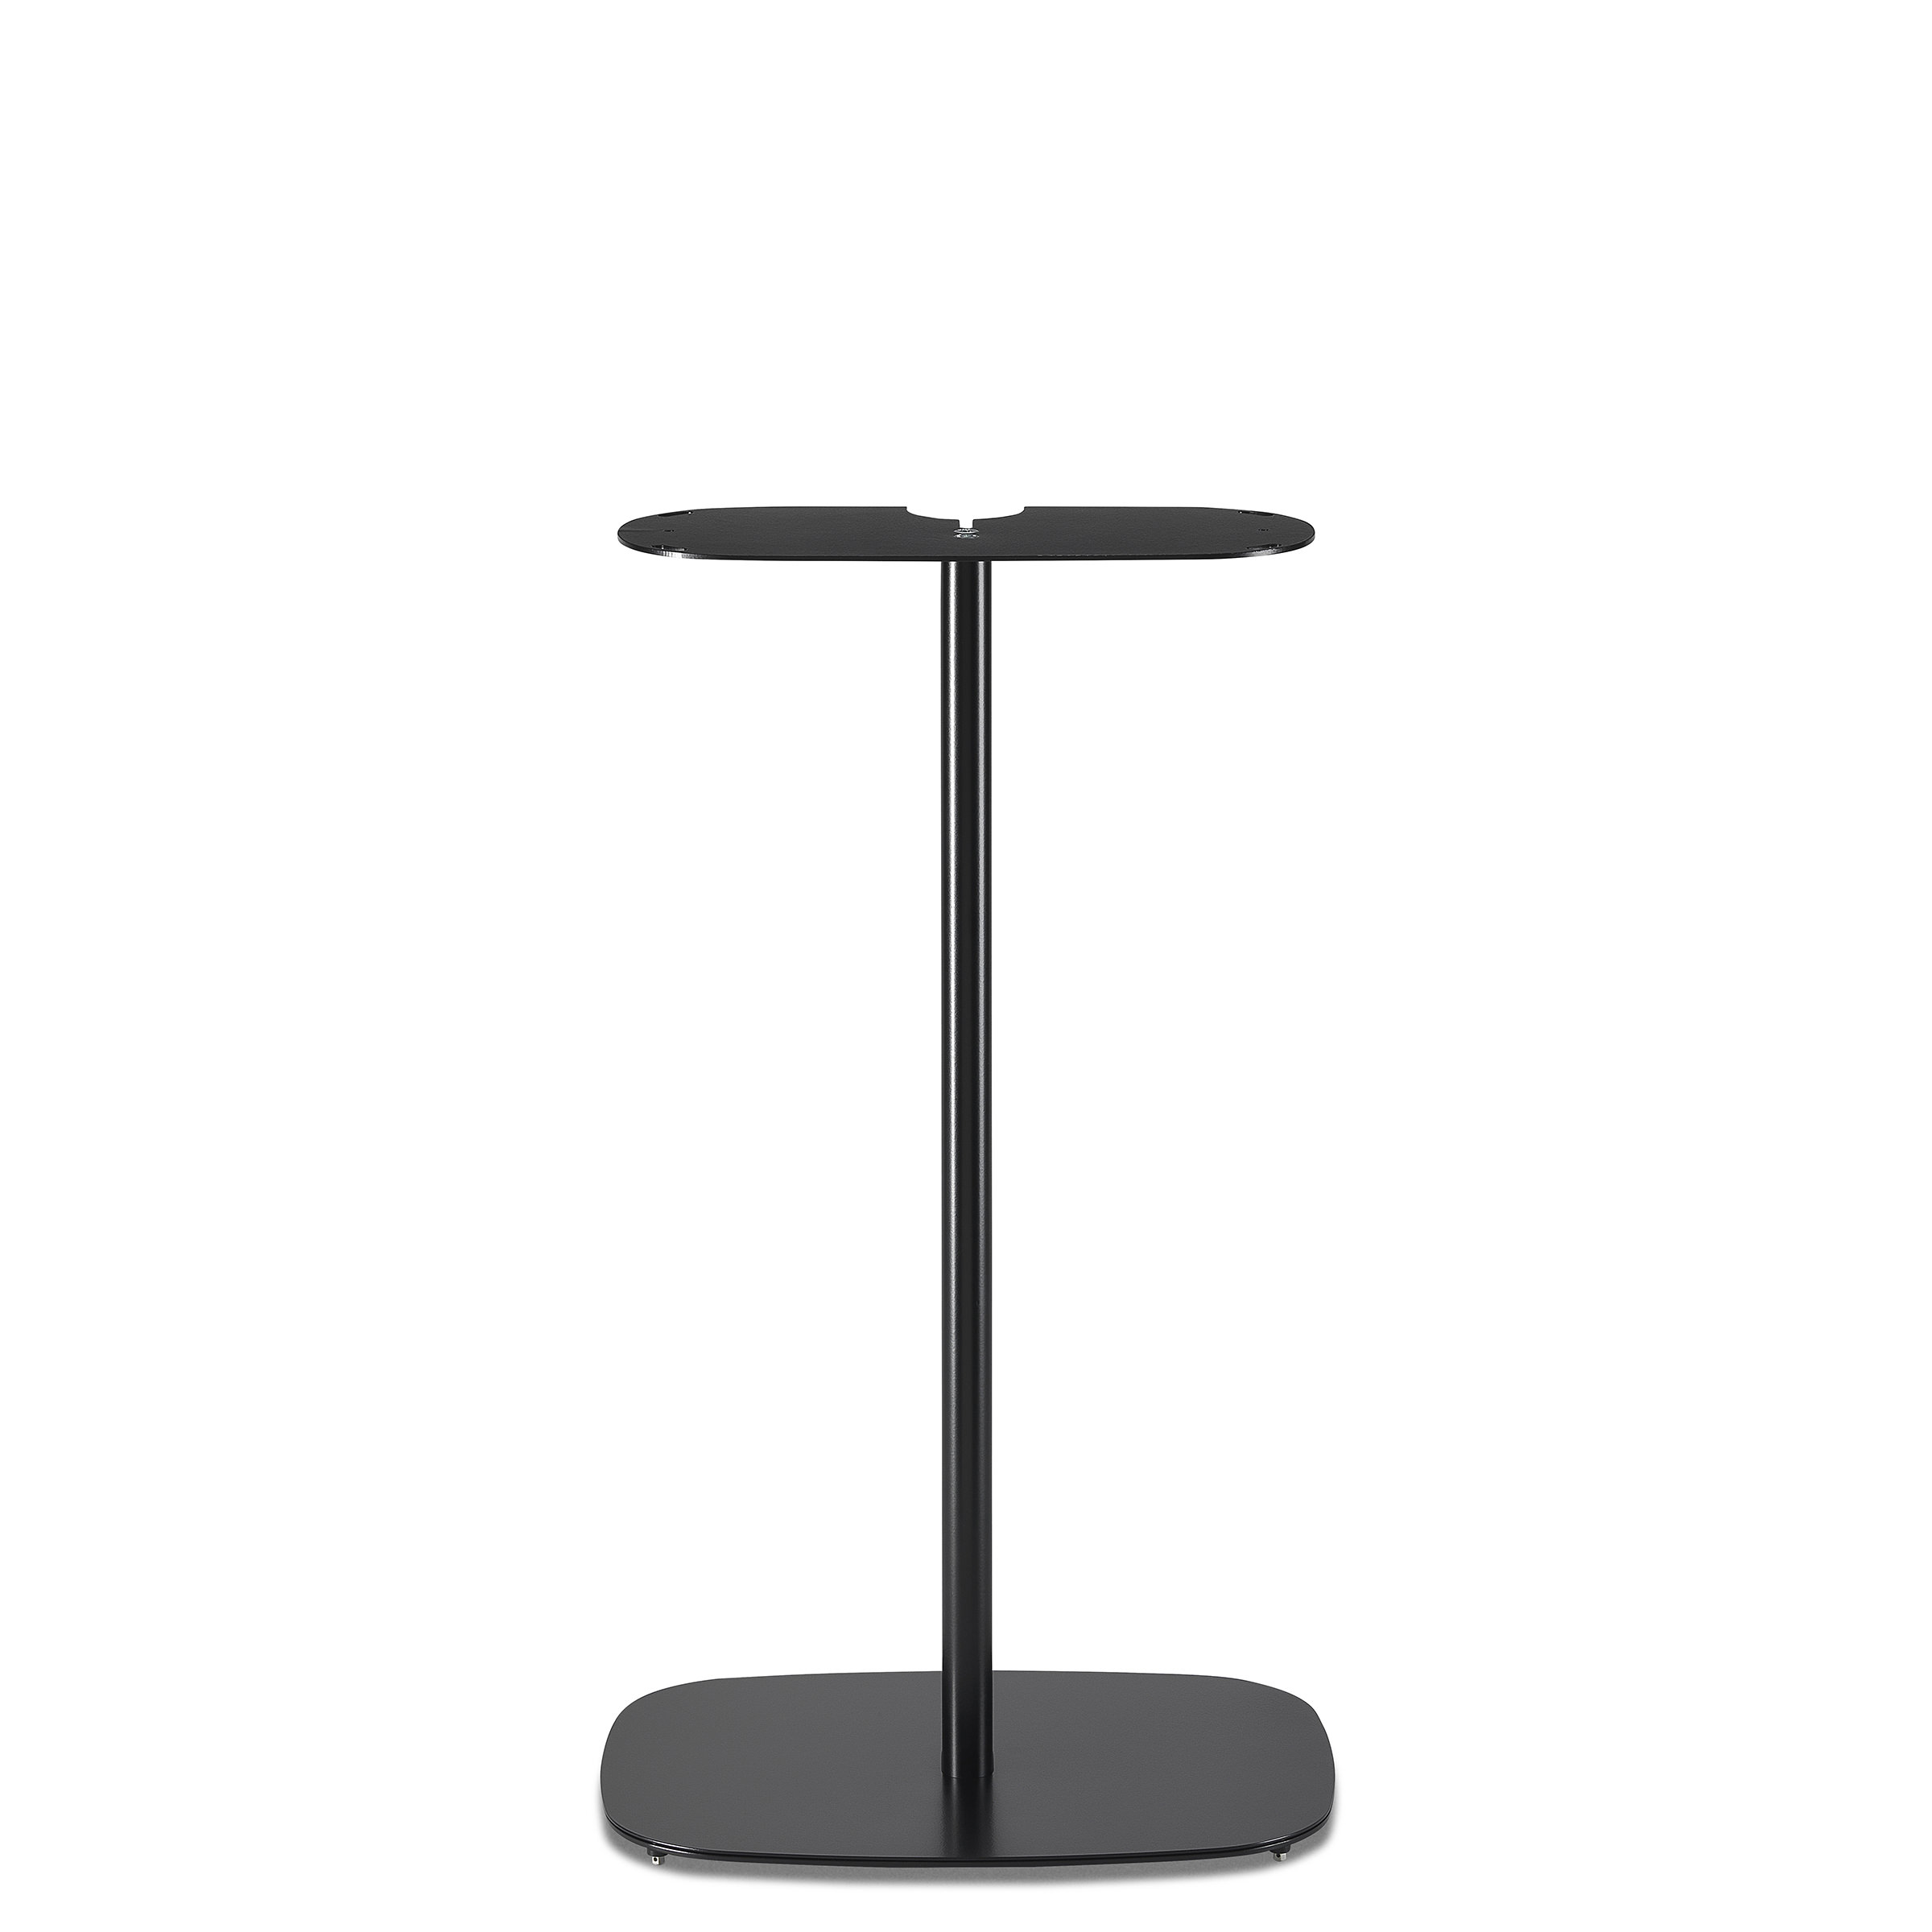 Harman Kardon Citation 500 standaard zwart 11